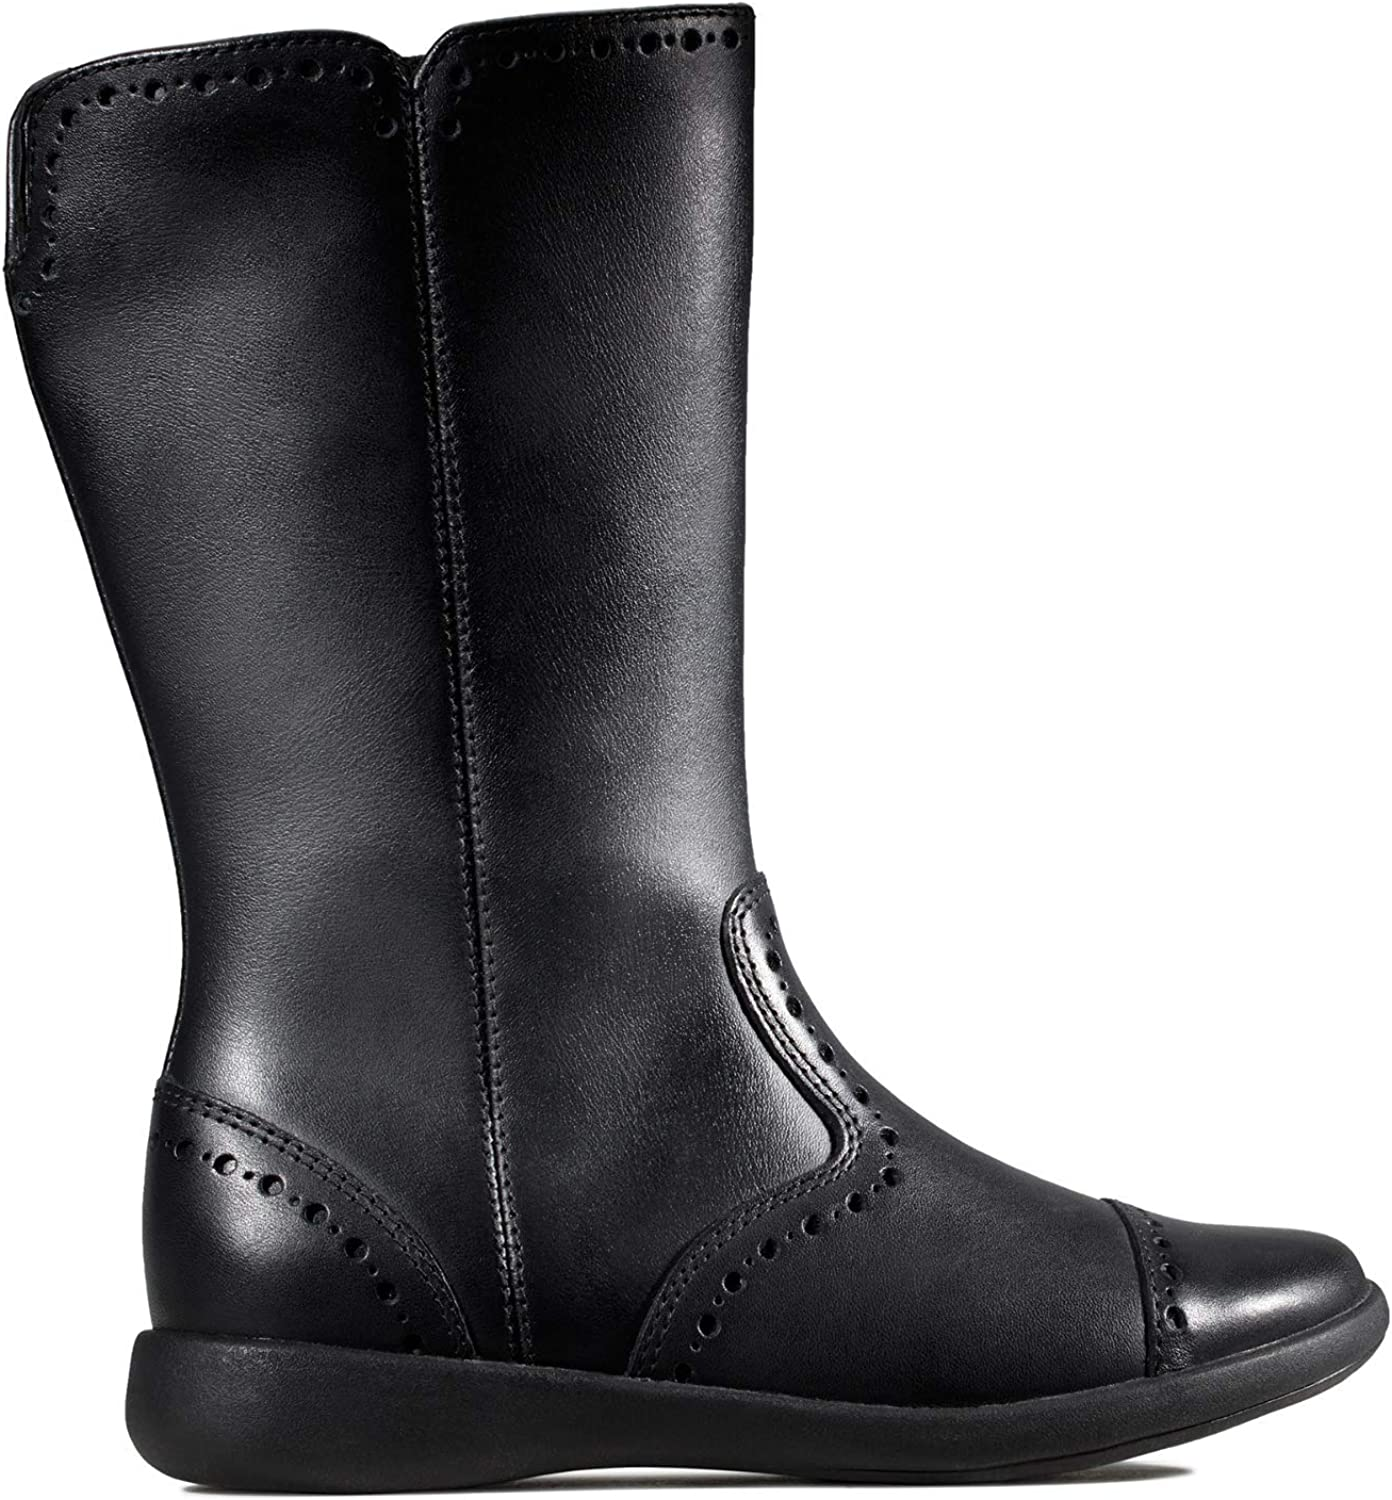 Clarks Etch Stride Kid Leather Boots in Black